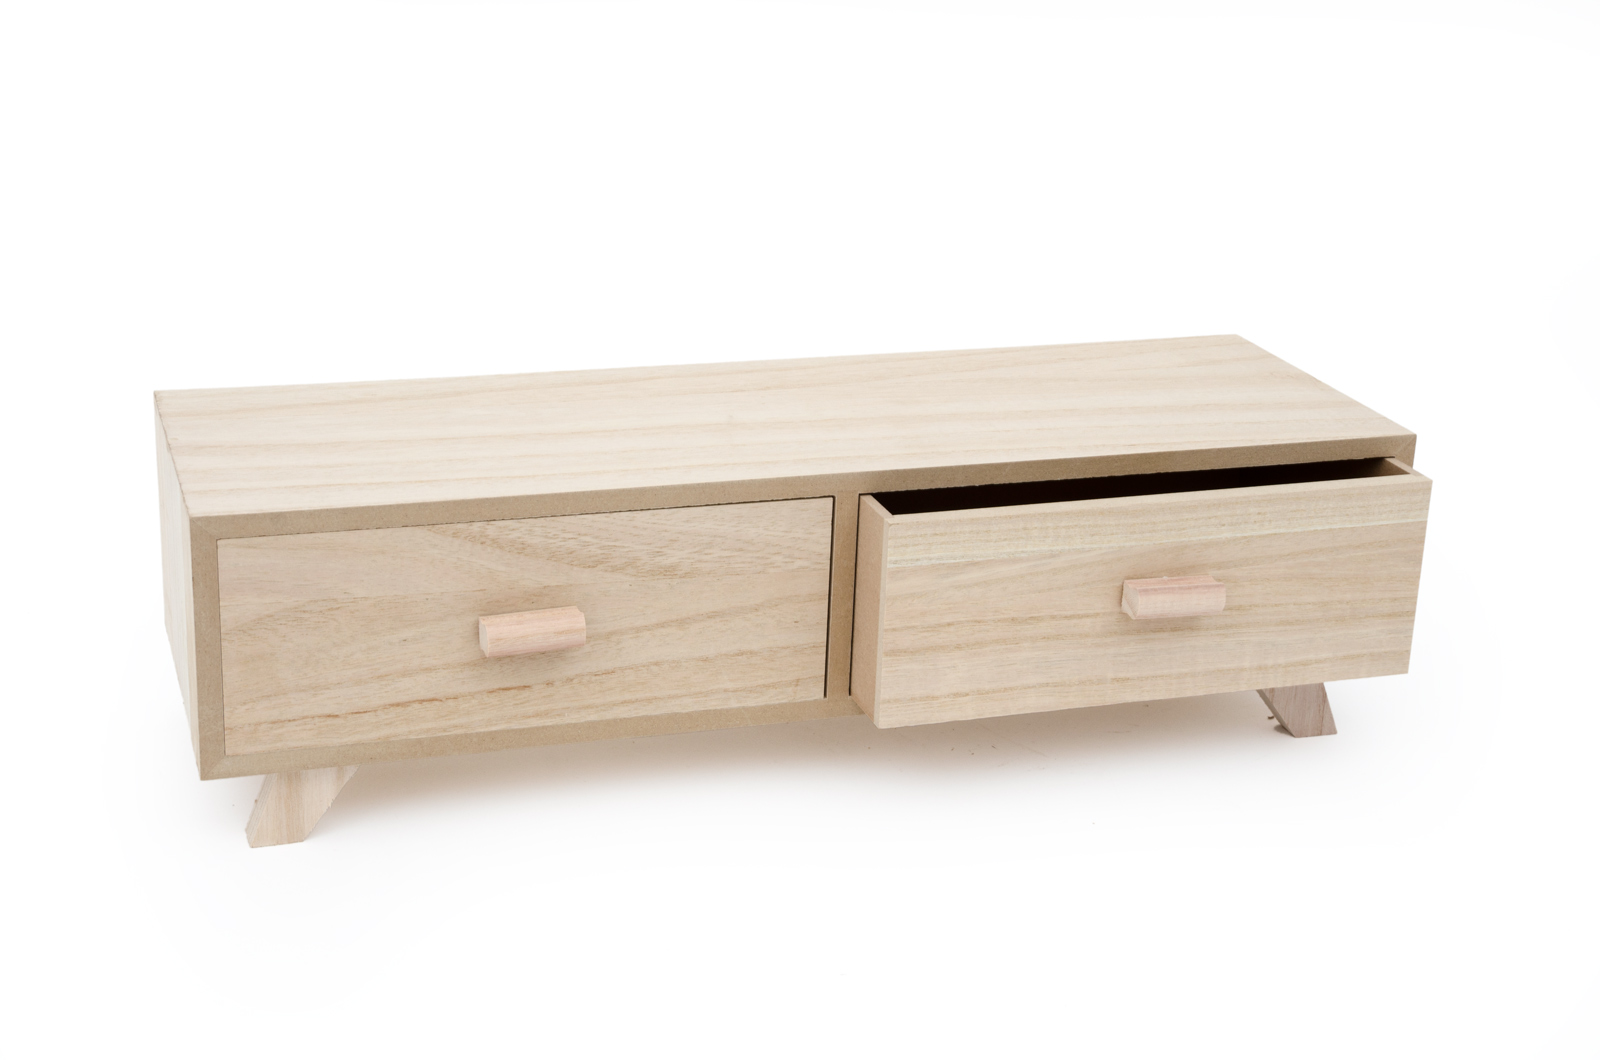 WOODEN BOX W/2 DRAWERS 53x17x14.5CM